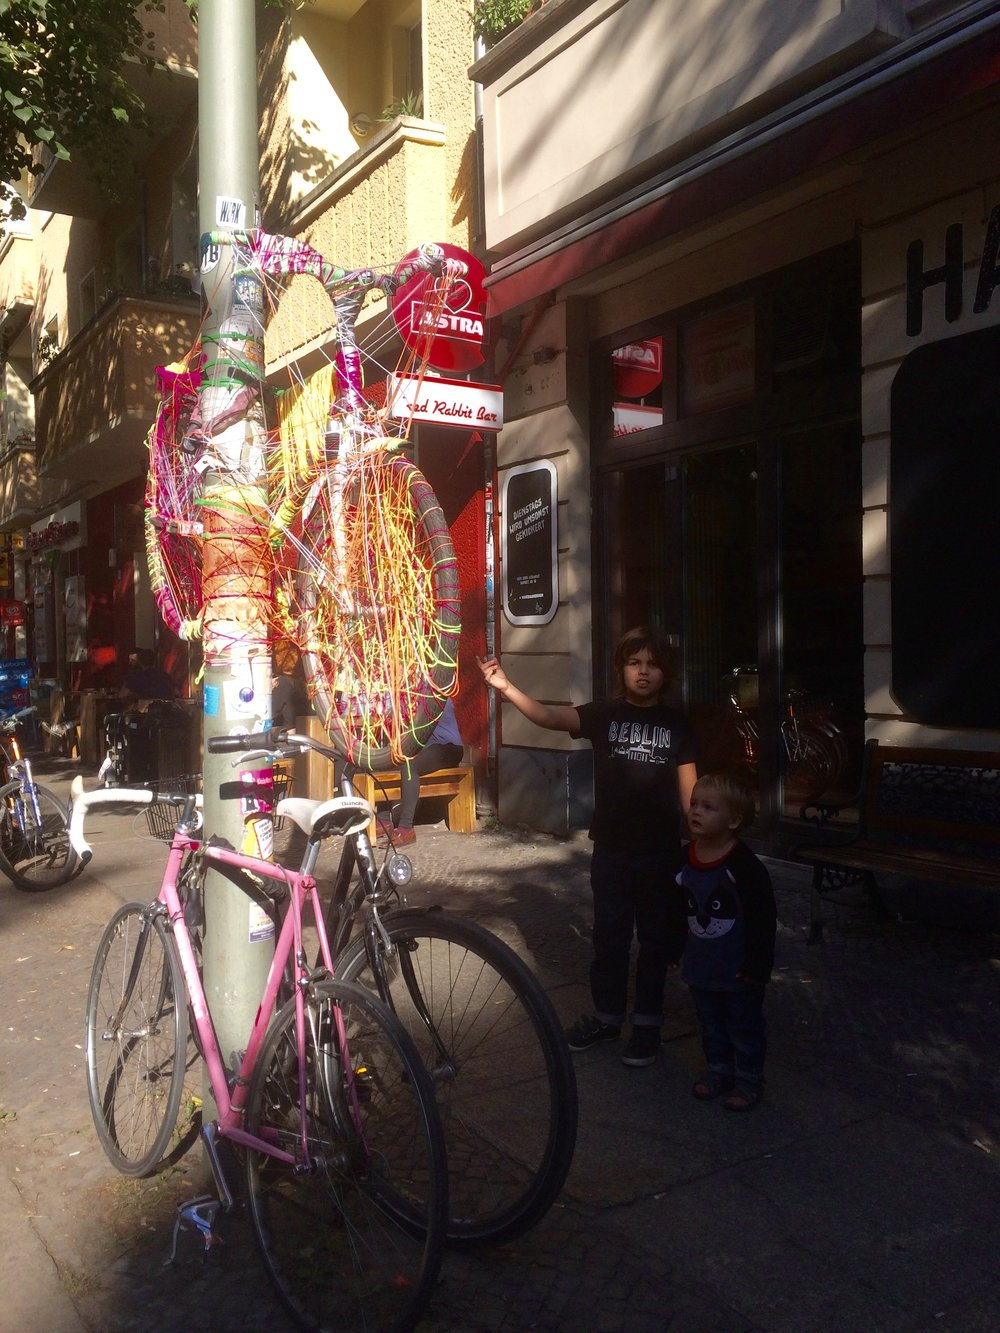 When we went to this shop, to send off a letter I wrote to my class. We posted the letter. When we got out we founds this bicycle hanging up. It was knitted onto the light pole. It looks really colourful and cool.